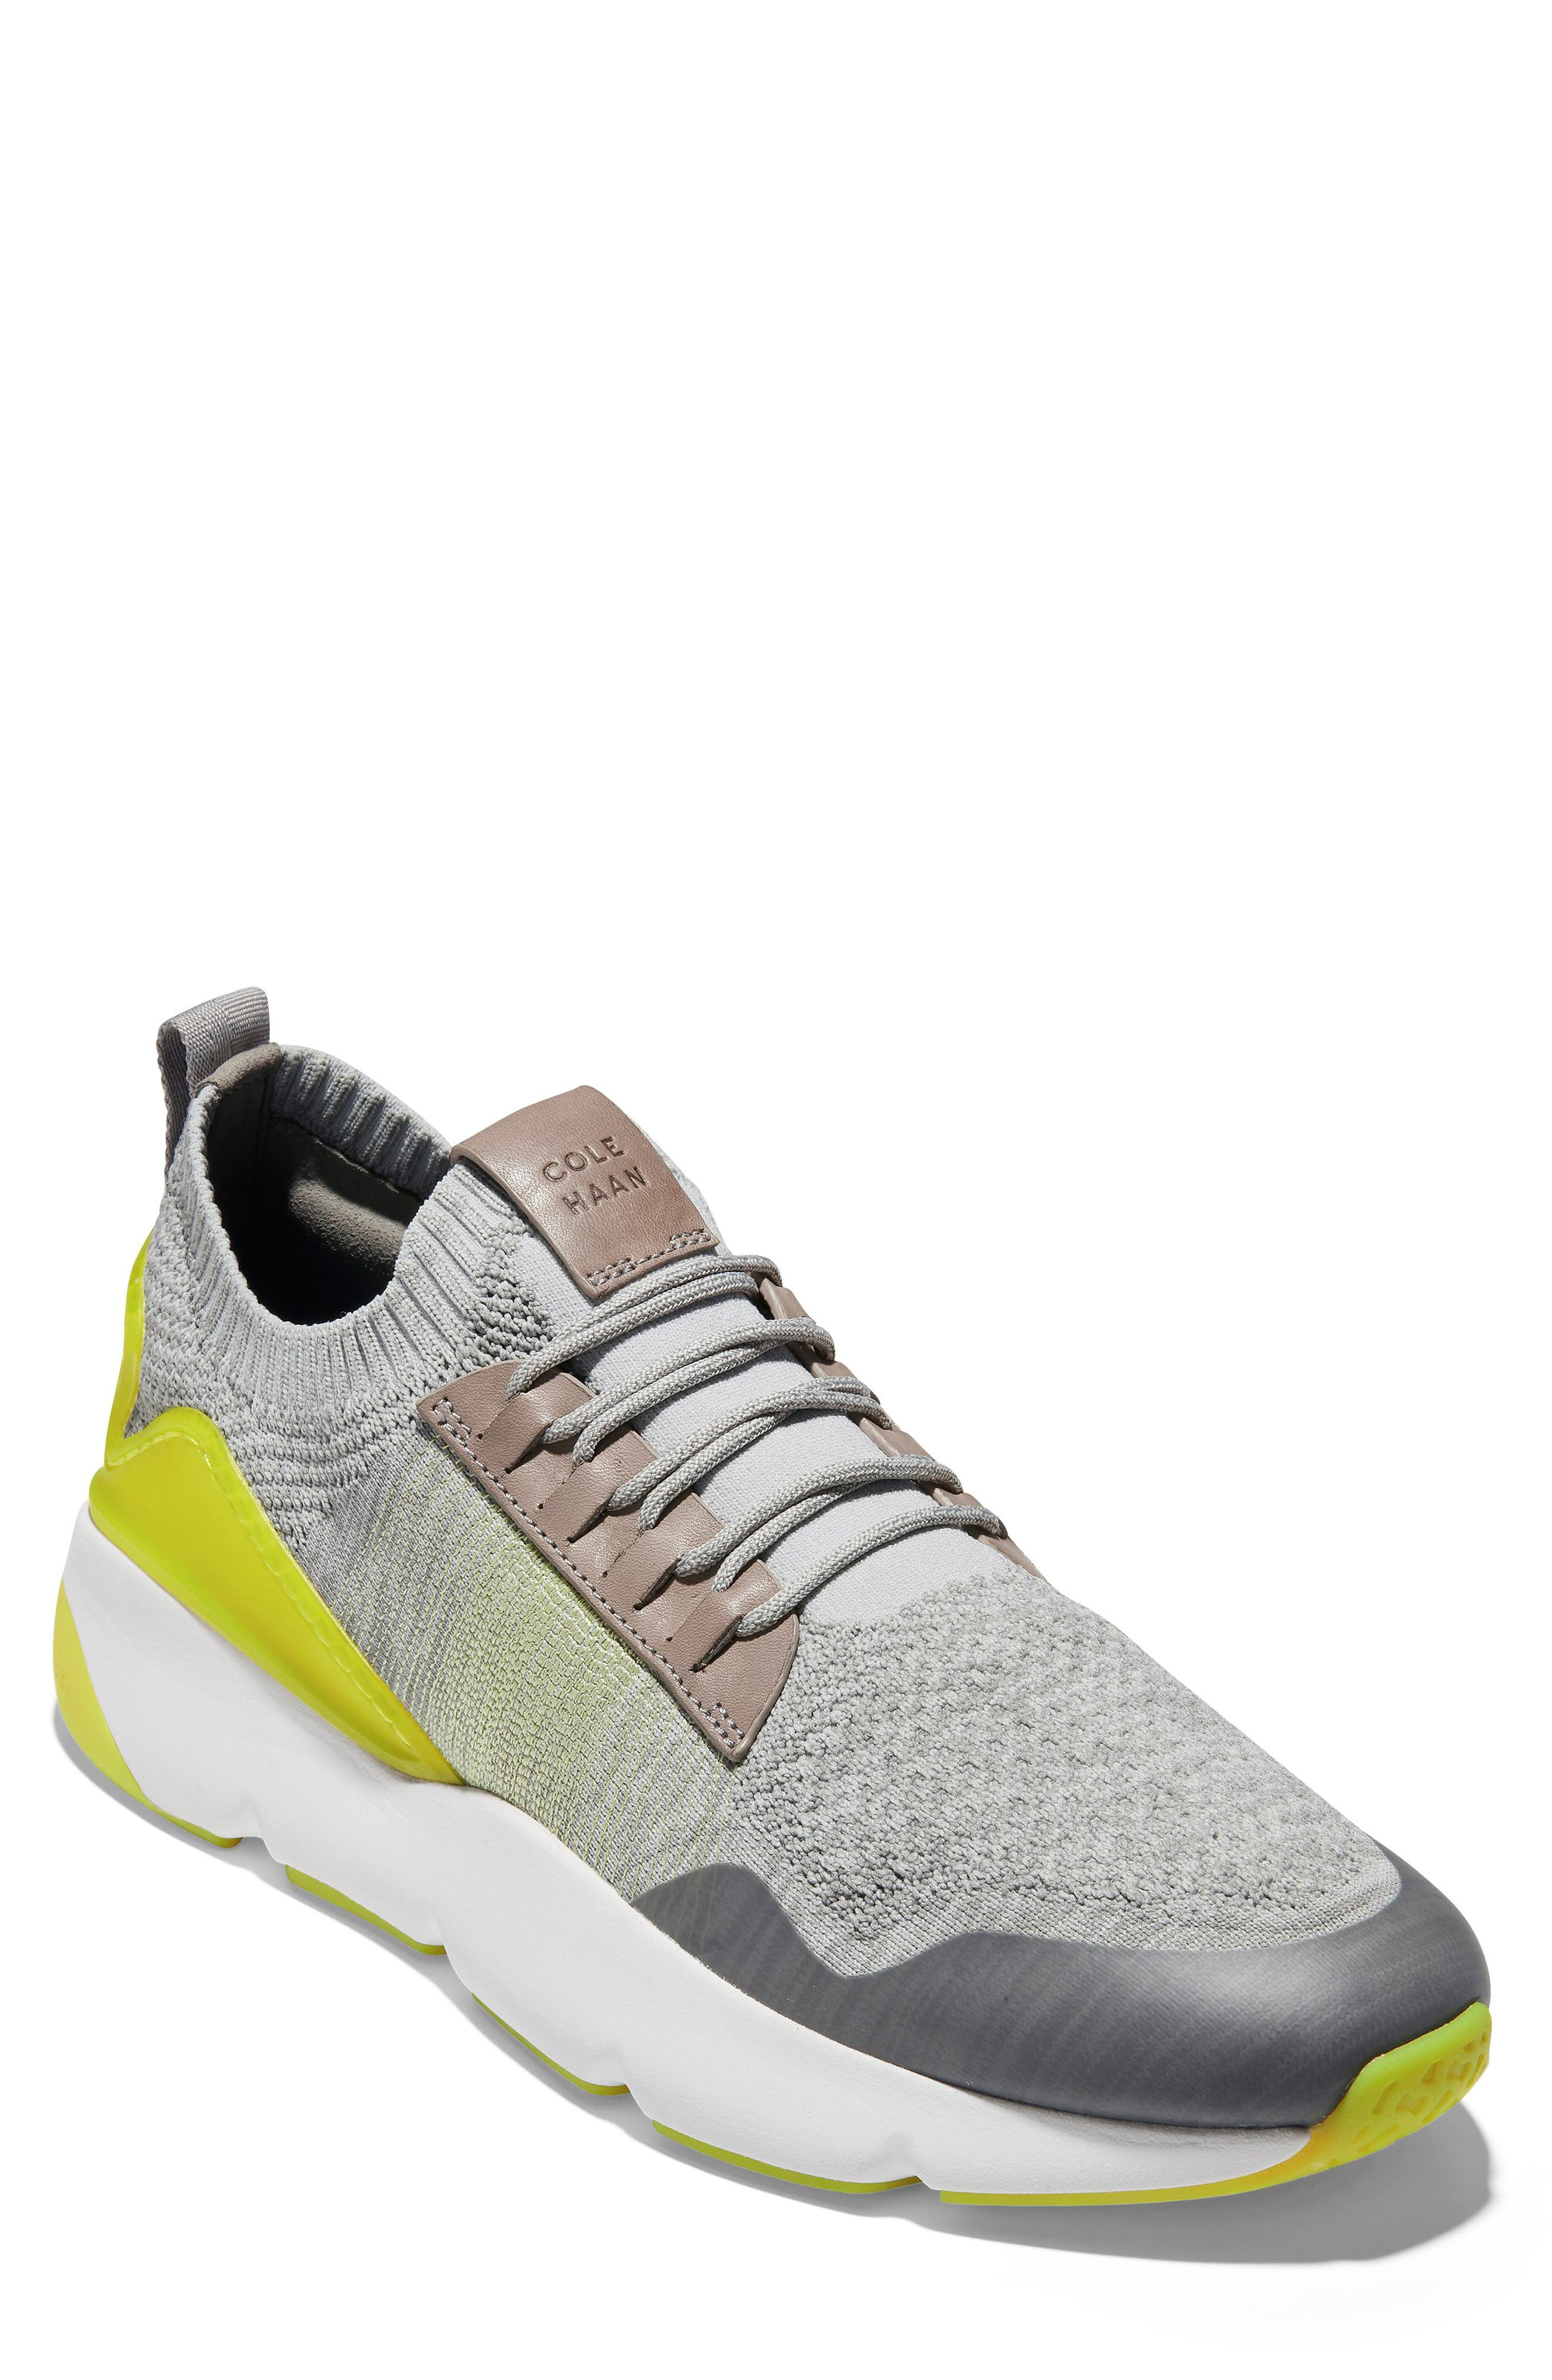 ZeroGrand All-Day Trainer Sneaker, Main, color, BLACK/ IVORY KNIT